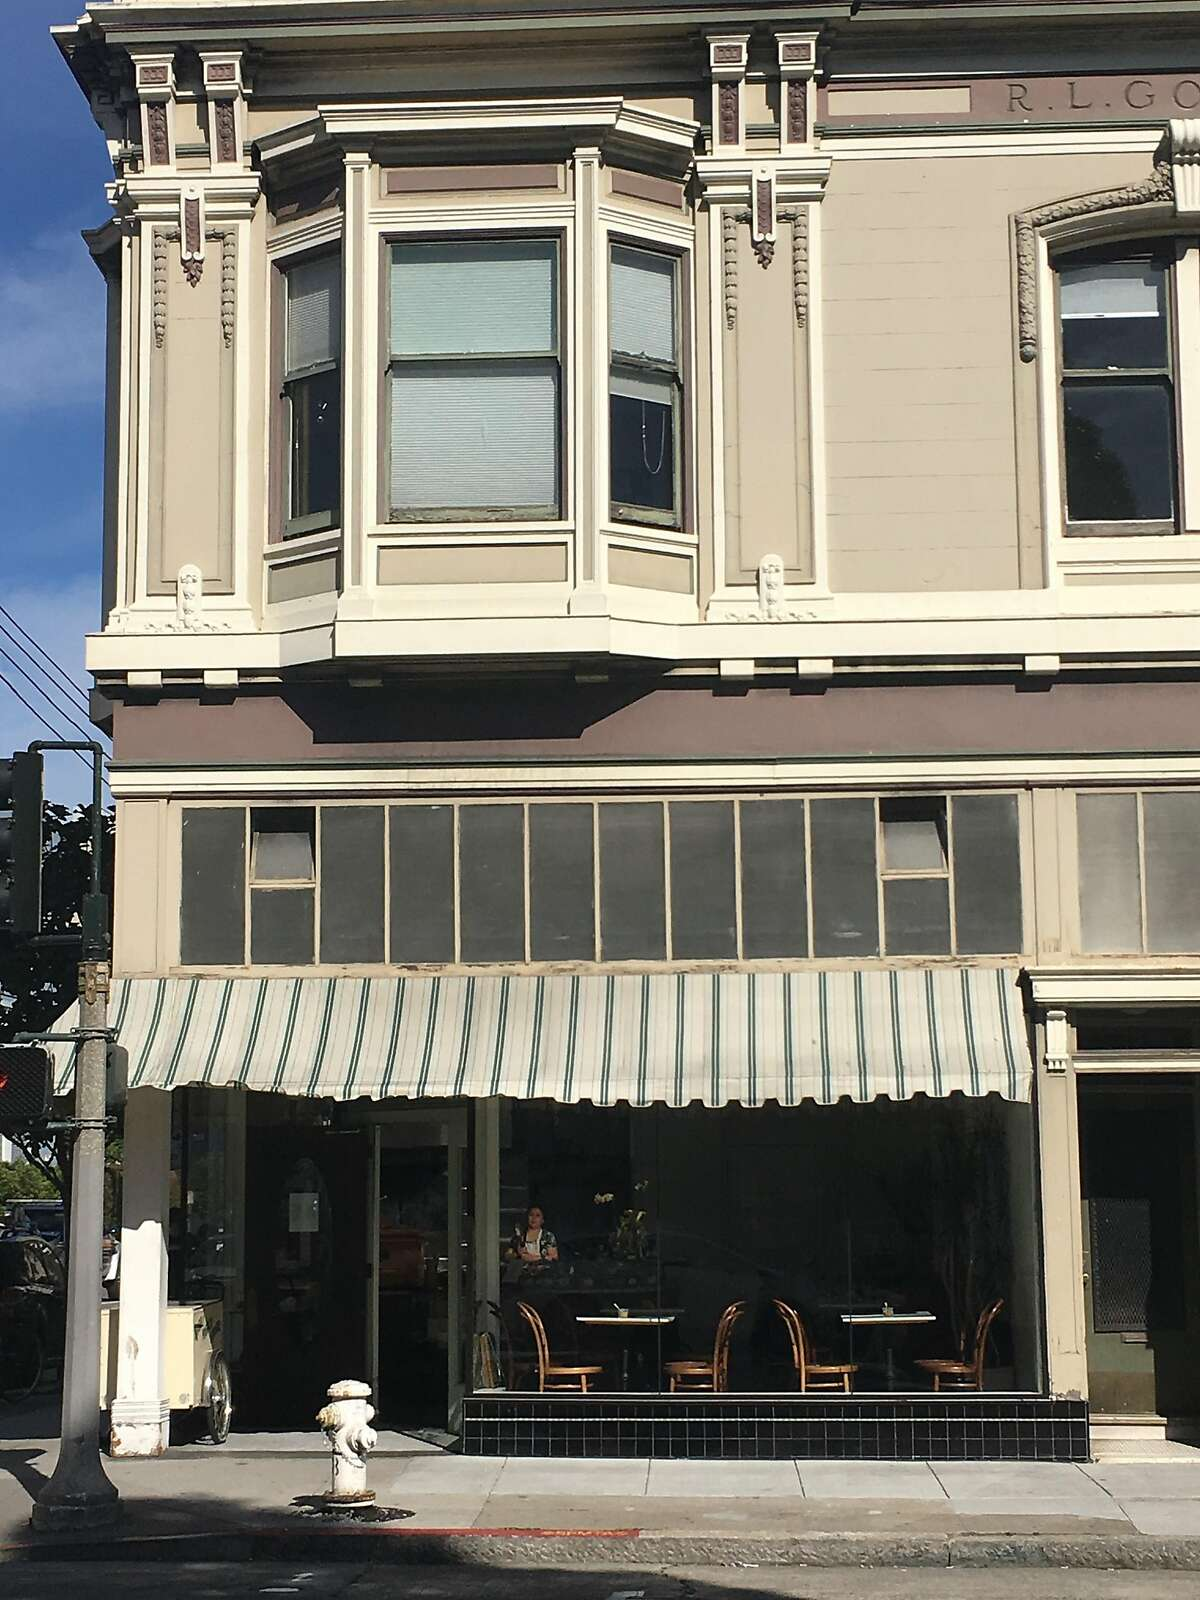 The exterior of 20th Century Cafe, after owner Michelle Polzine repaired her renovated windows following a February 3 car crash.